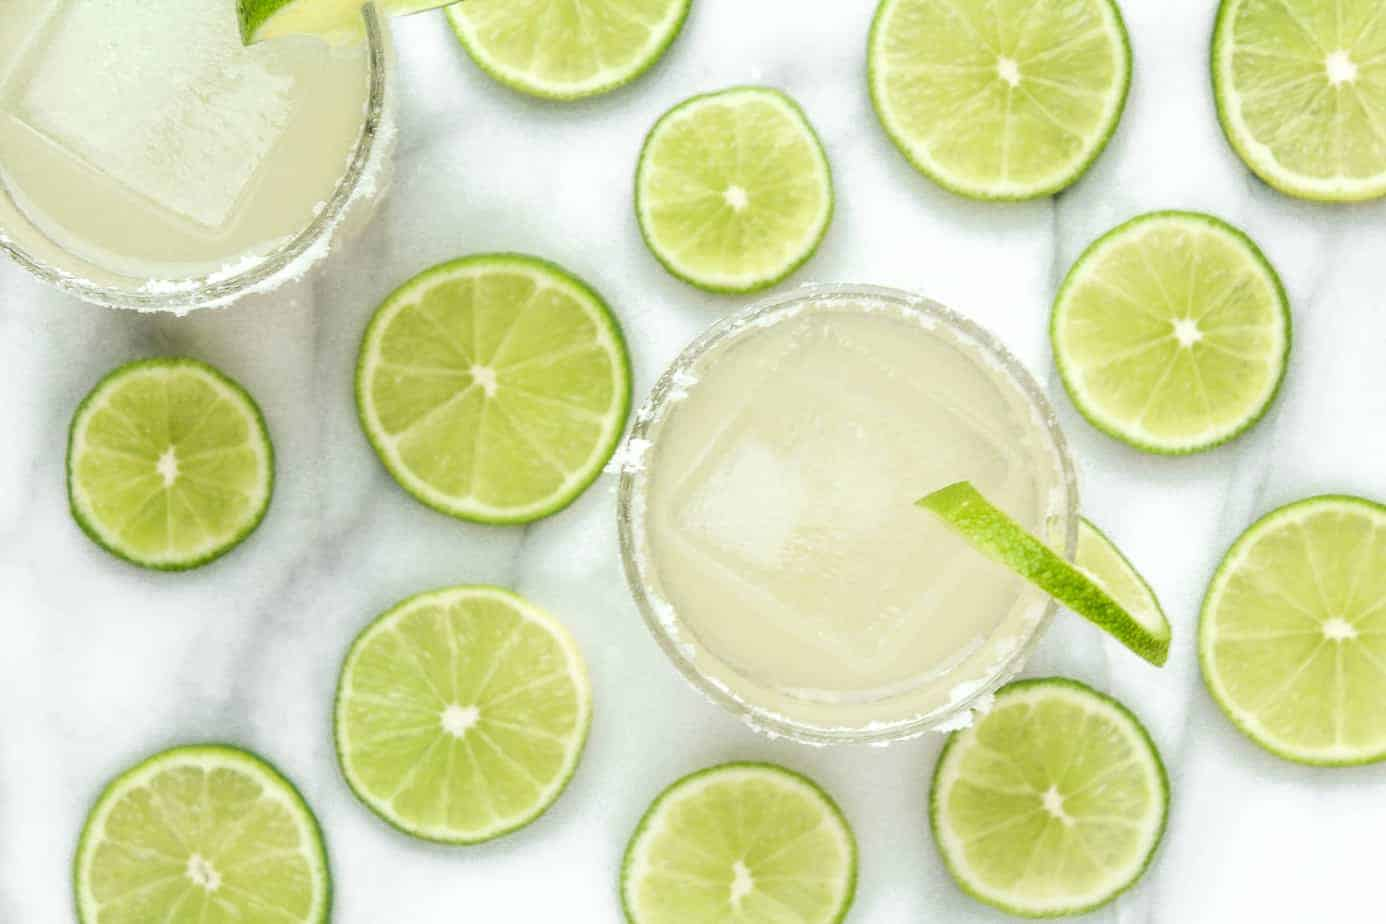 classic margaritas on a marble countertop with limes